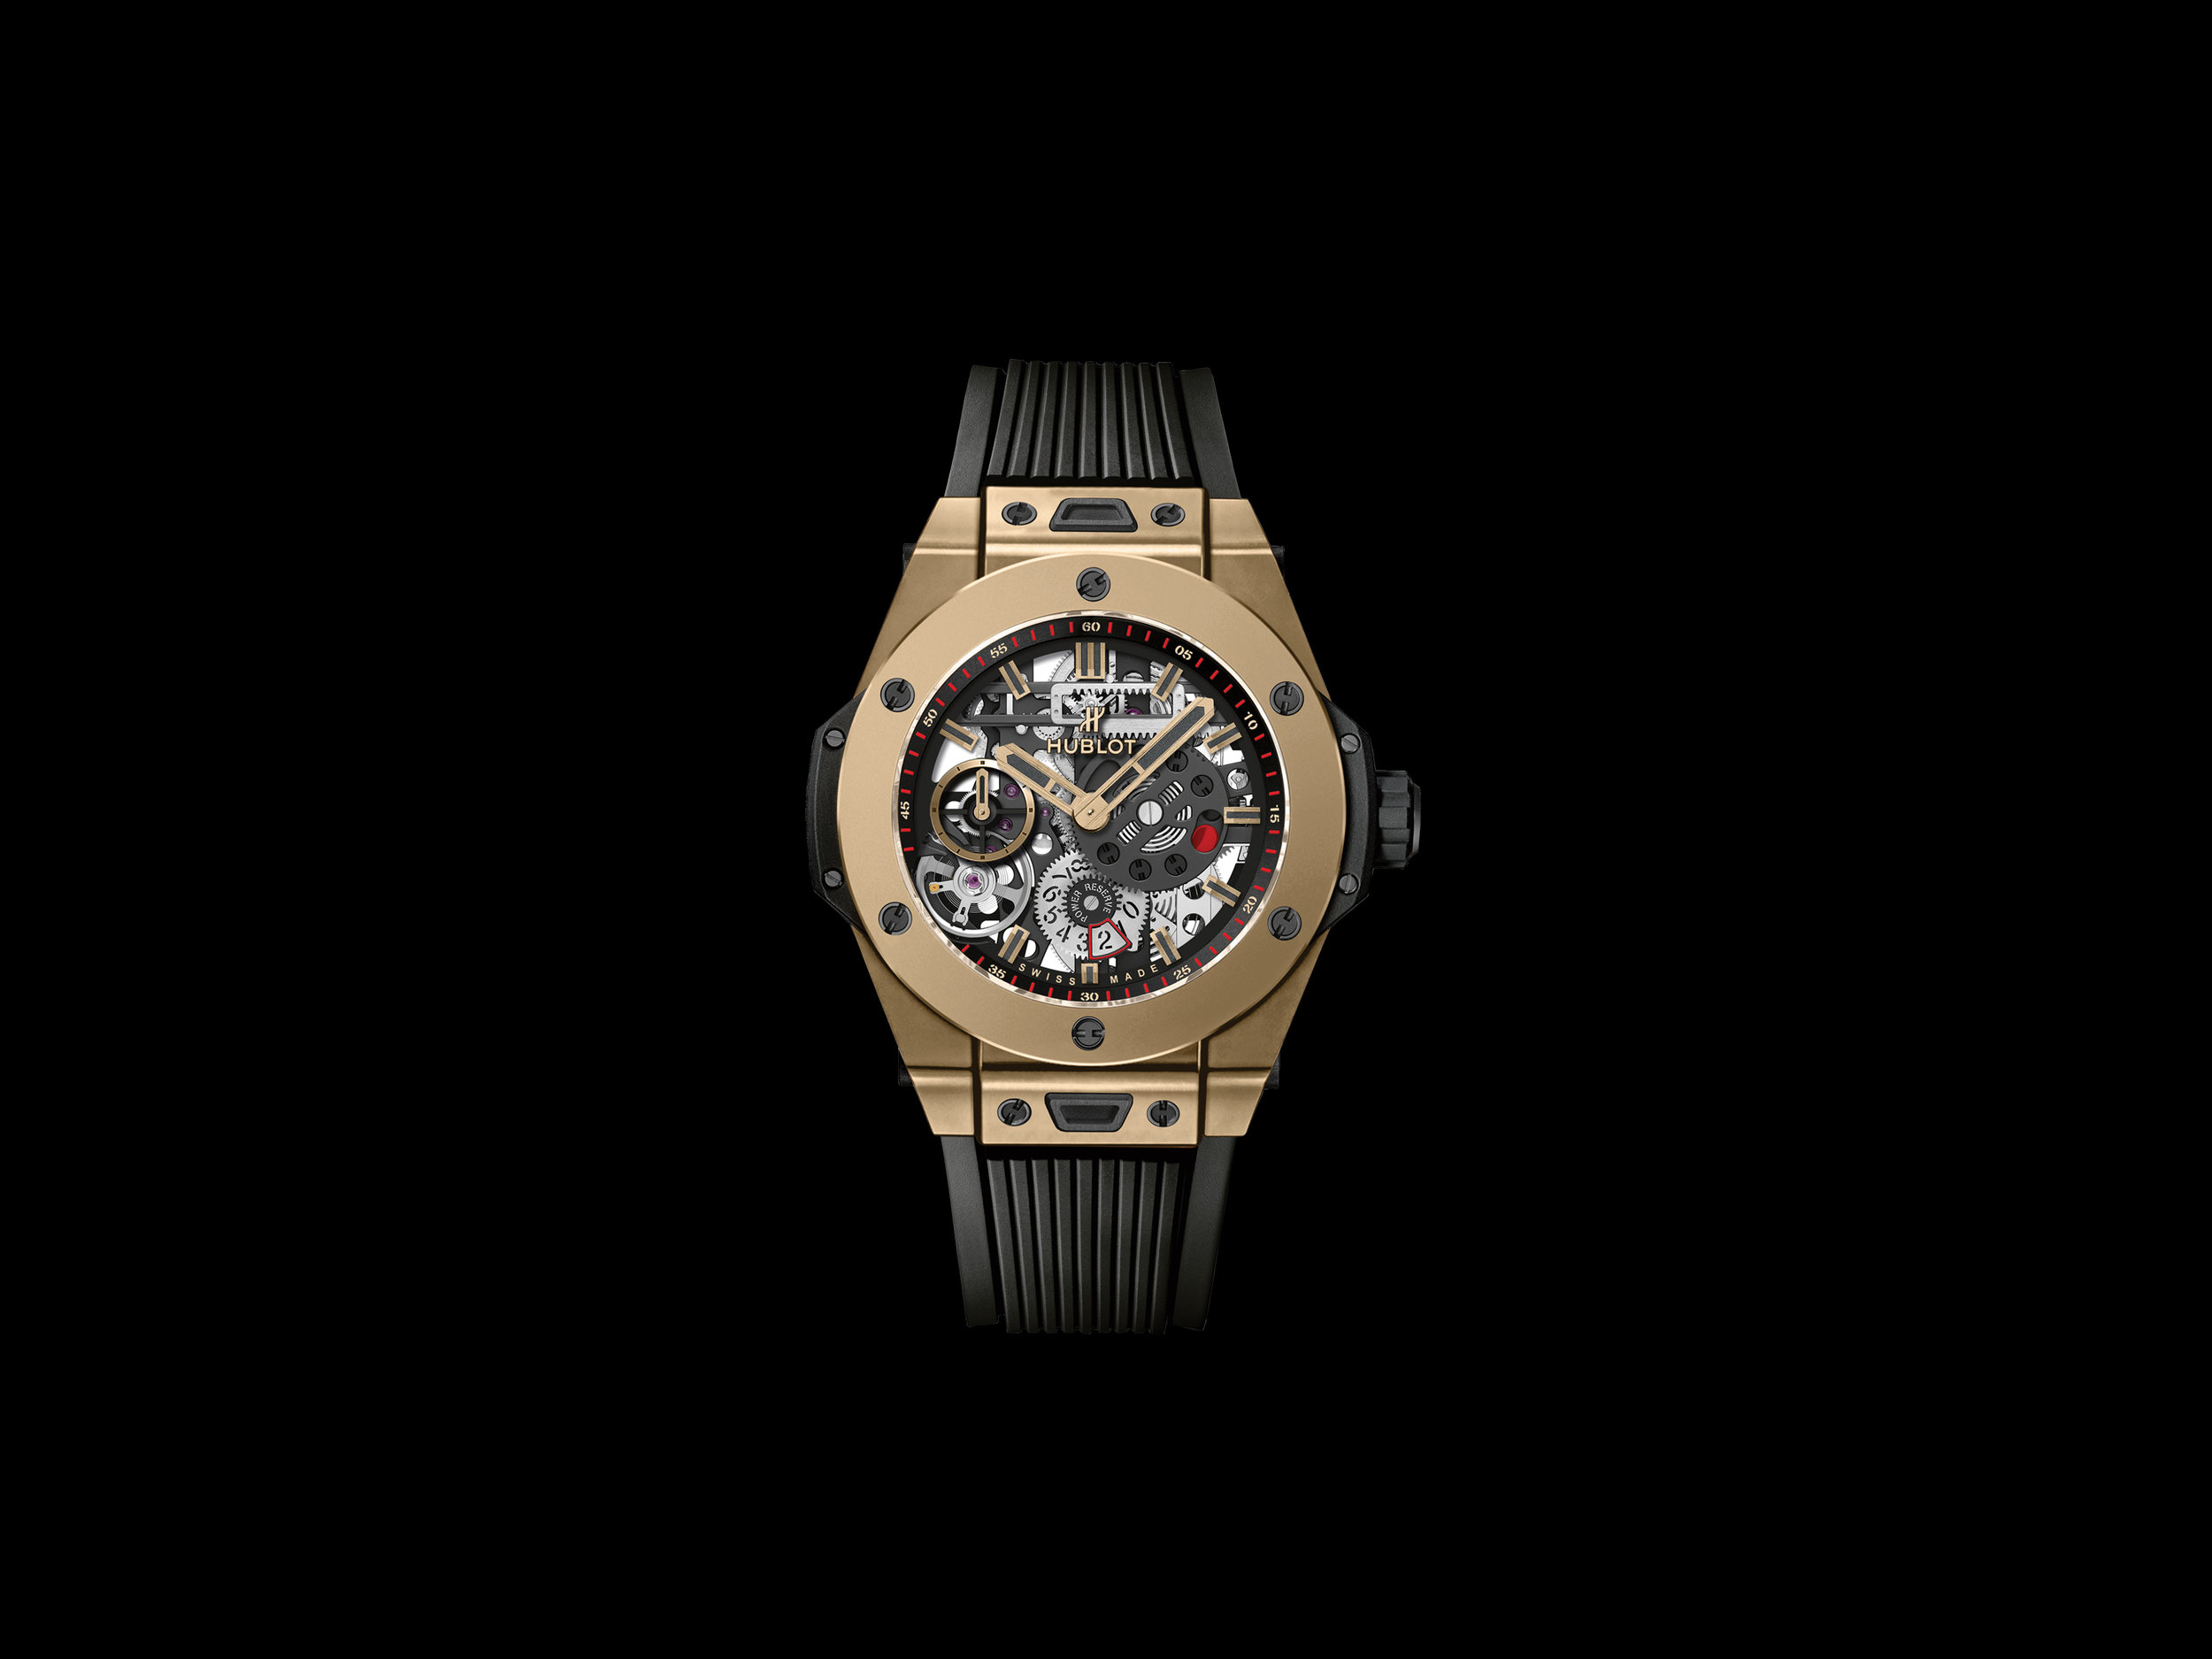 watch invicta top men most watches popular the under for banner blog